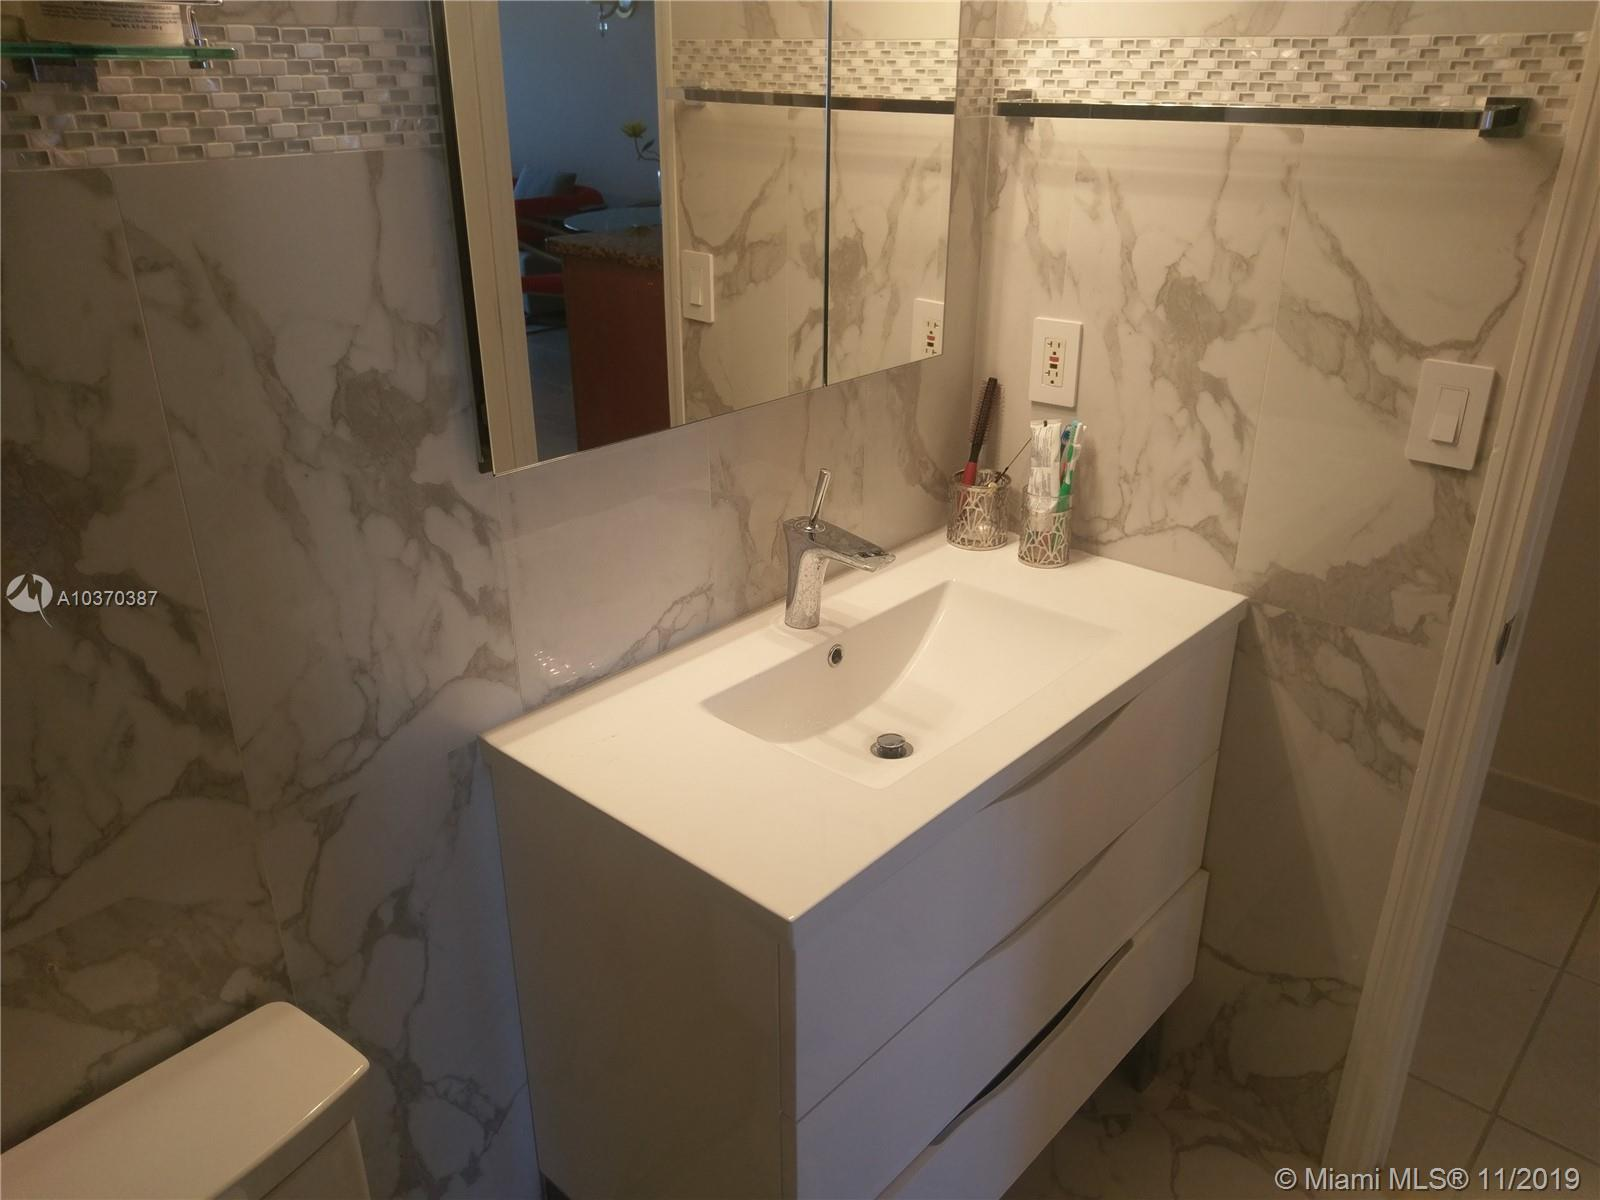 Photo of 2030 Ocean Dr #716, Hallandale, Florida, 33009 - ELEGANT EURO STYLE BATHROOM WITH FLOOR-TO-CEILING CARRERRA MARBLE AND GLASS MOSAIC DECORATIVE TILES AND CUSTOM RAIN SHOWER ENCLOSURE